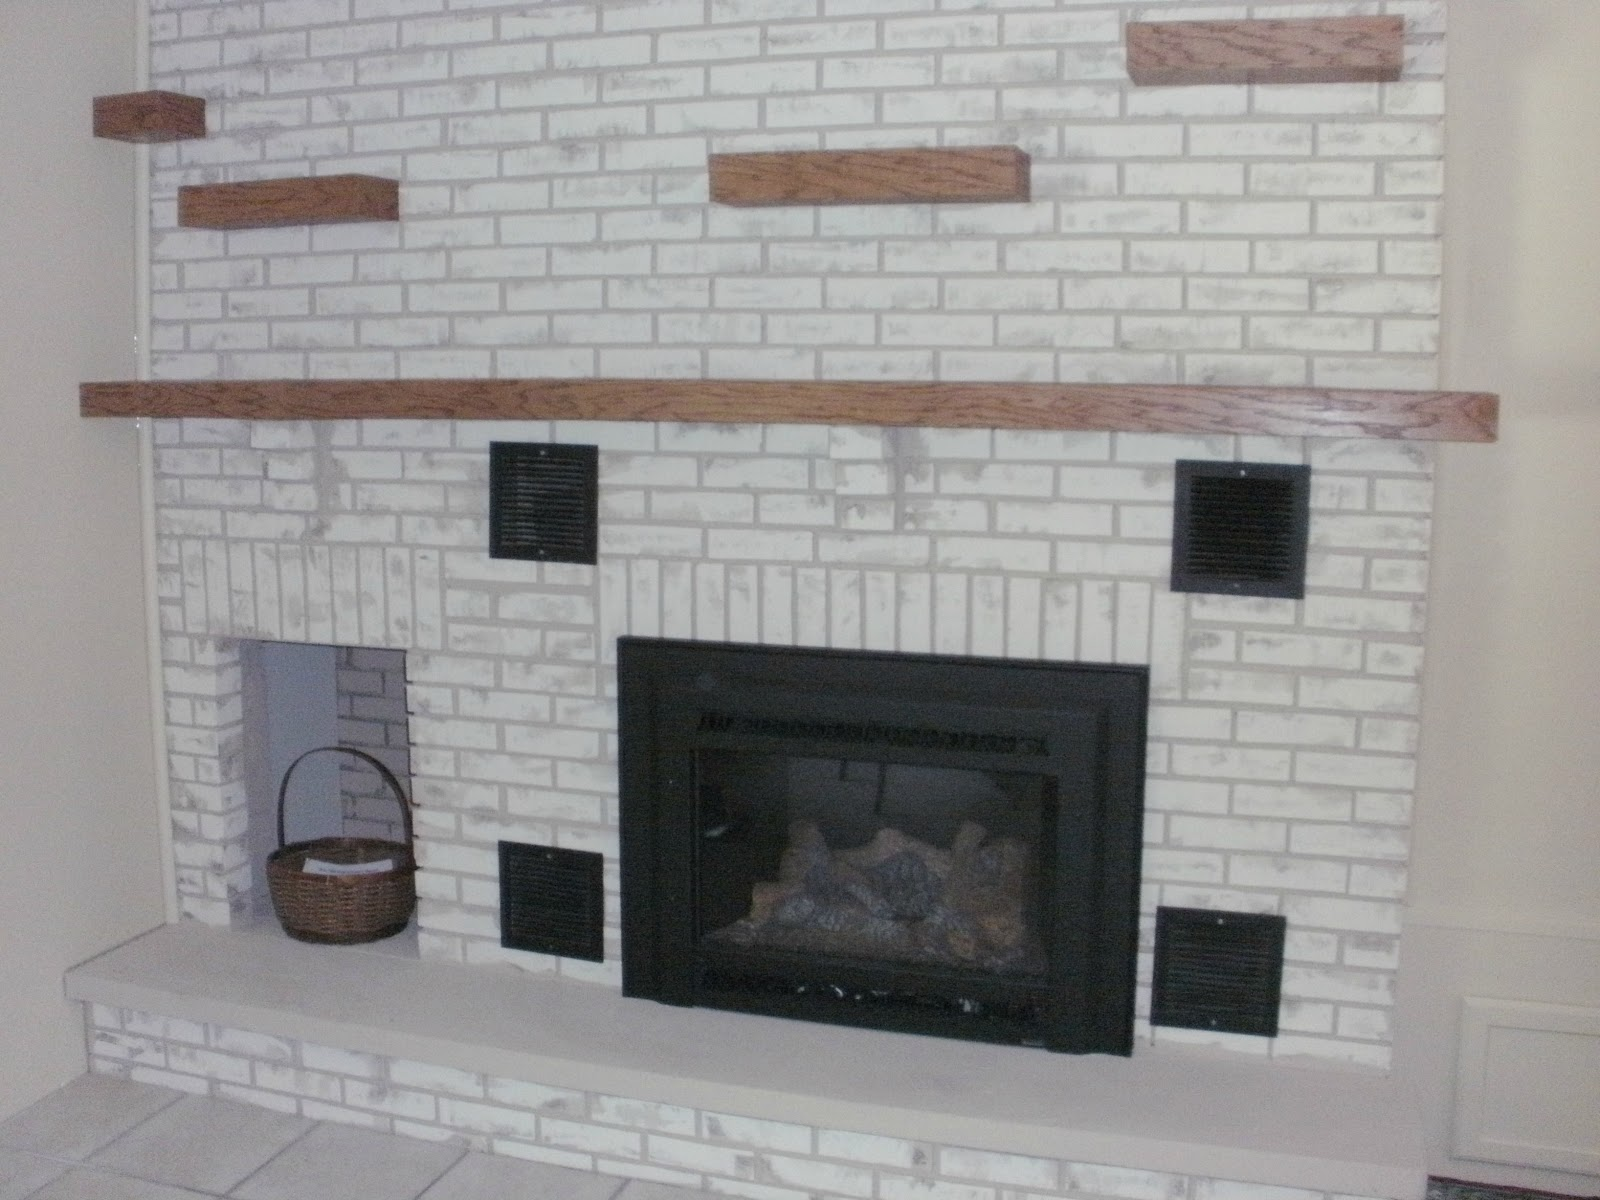 fireplace innovation a brick modern how resurfacing elegant makeover view lettered contemporary with reface home regarding to cottage design refinish the